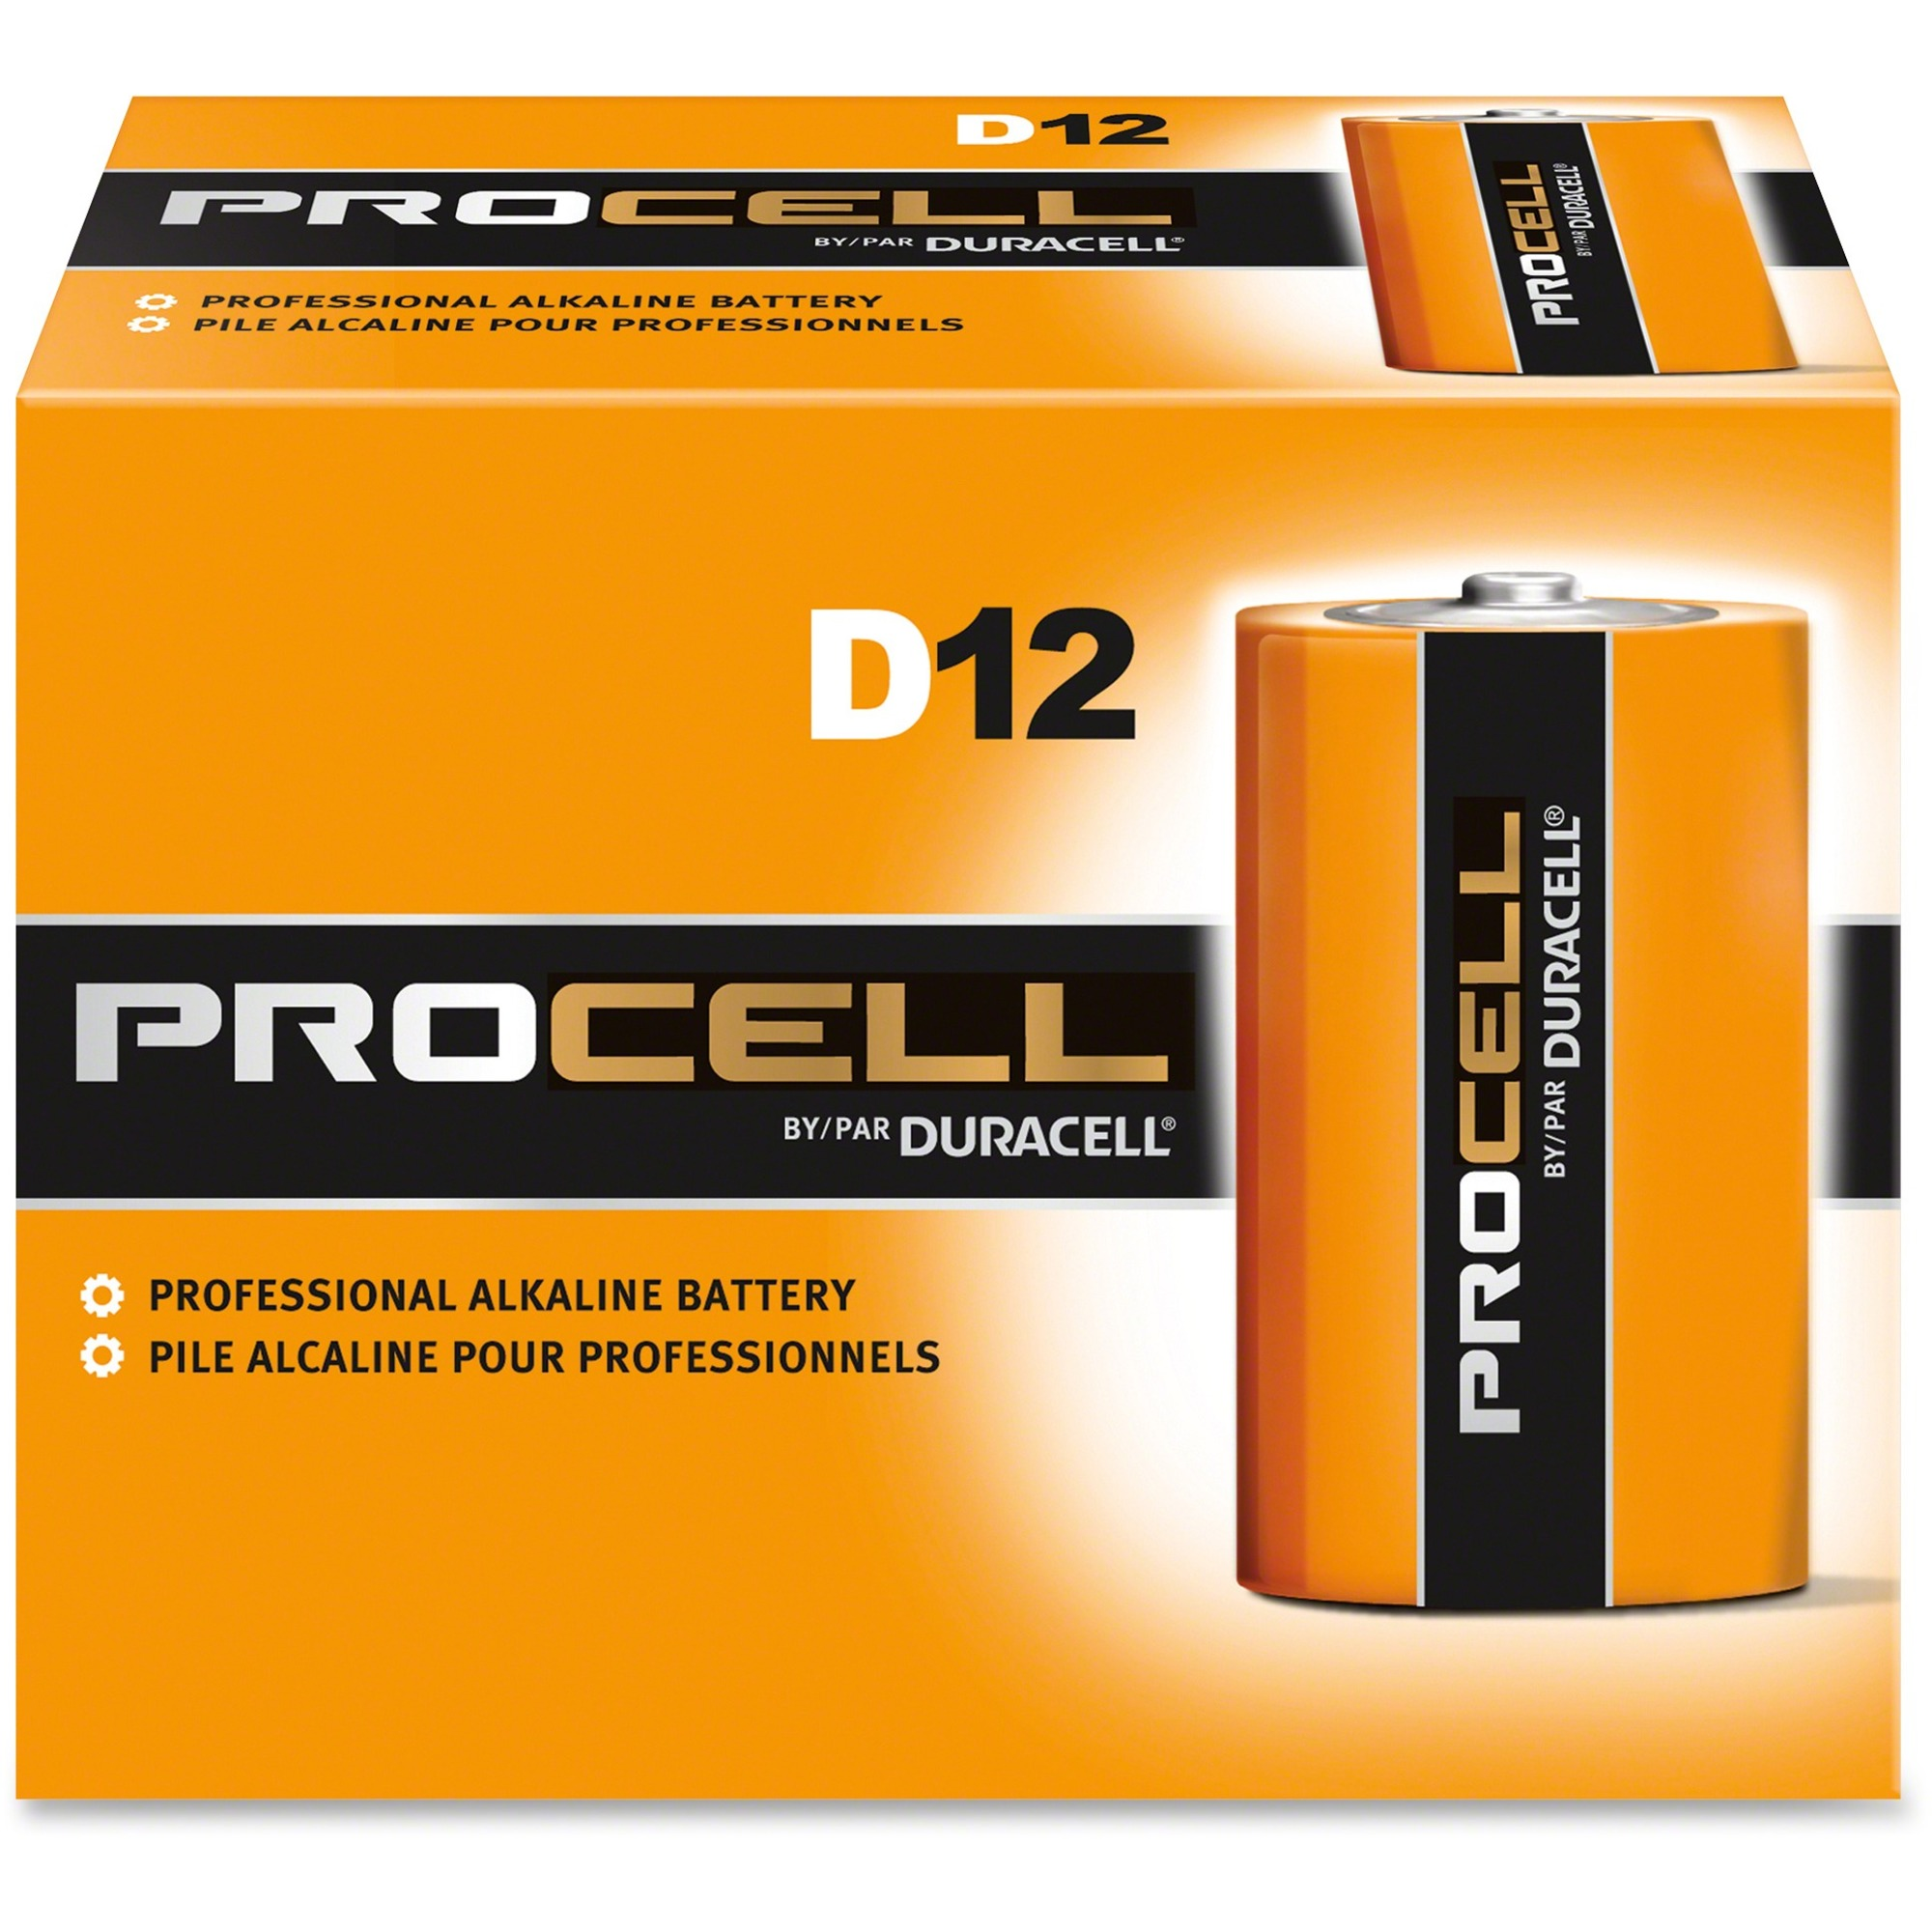 Duracell Procell Alkaline D Batteries - PC1300 - 12/pack